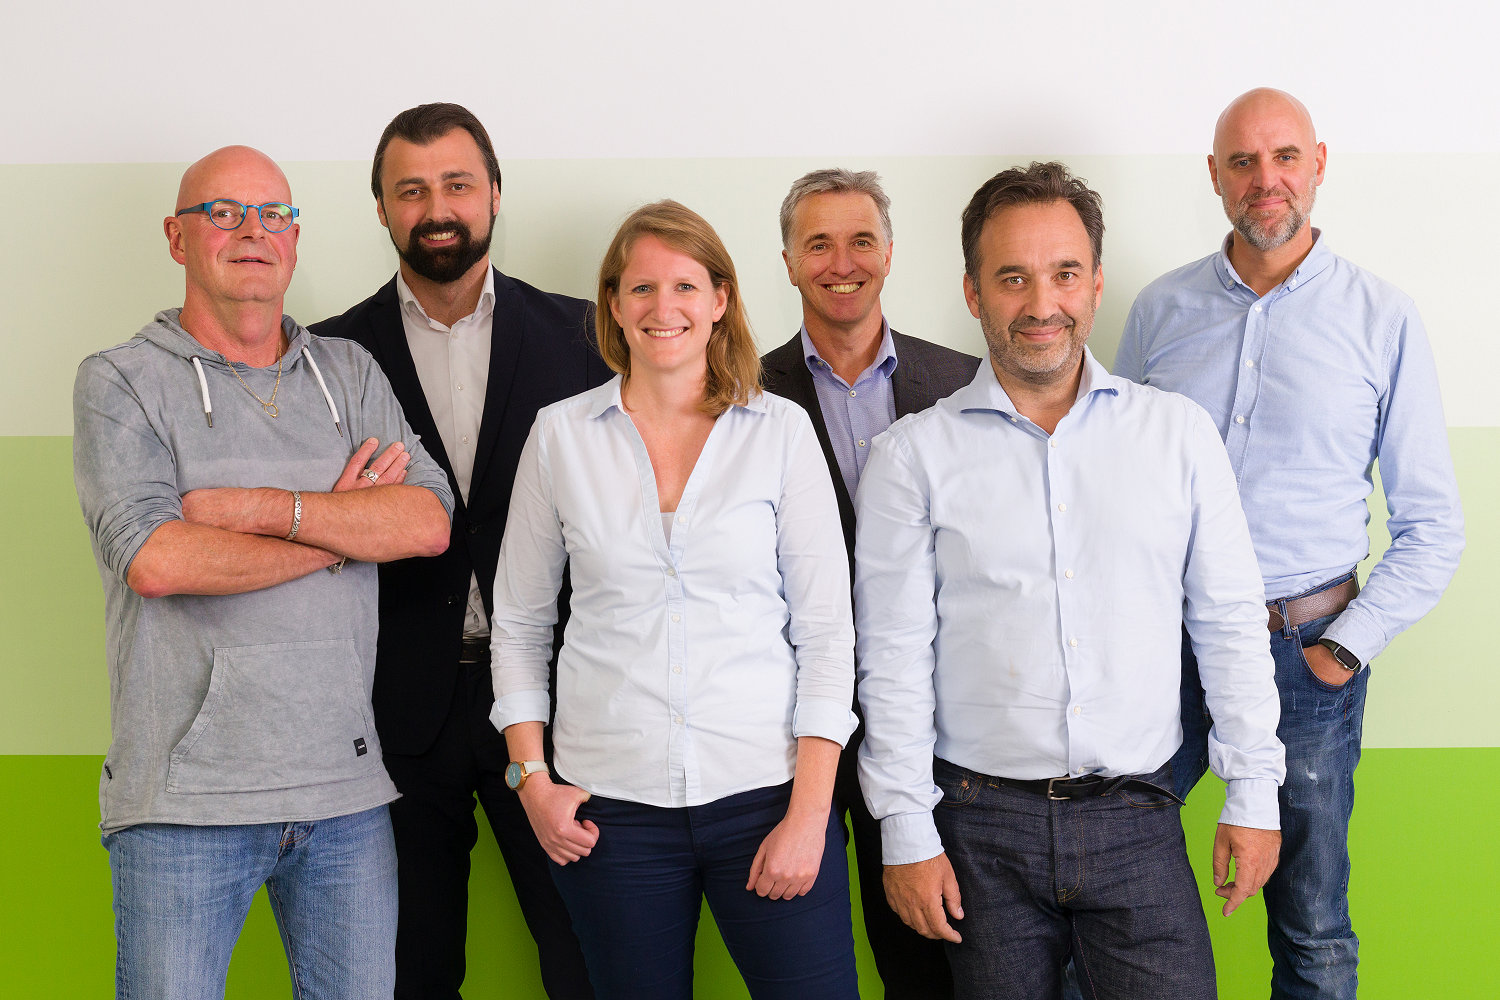 Edwin Kiewik, Hajrudin Smajilbegovic, Caroline Stoov�, Marcel van der Meulen, Peter Tangstr�m and Wim Buys of SOS International